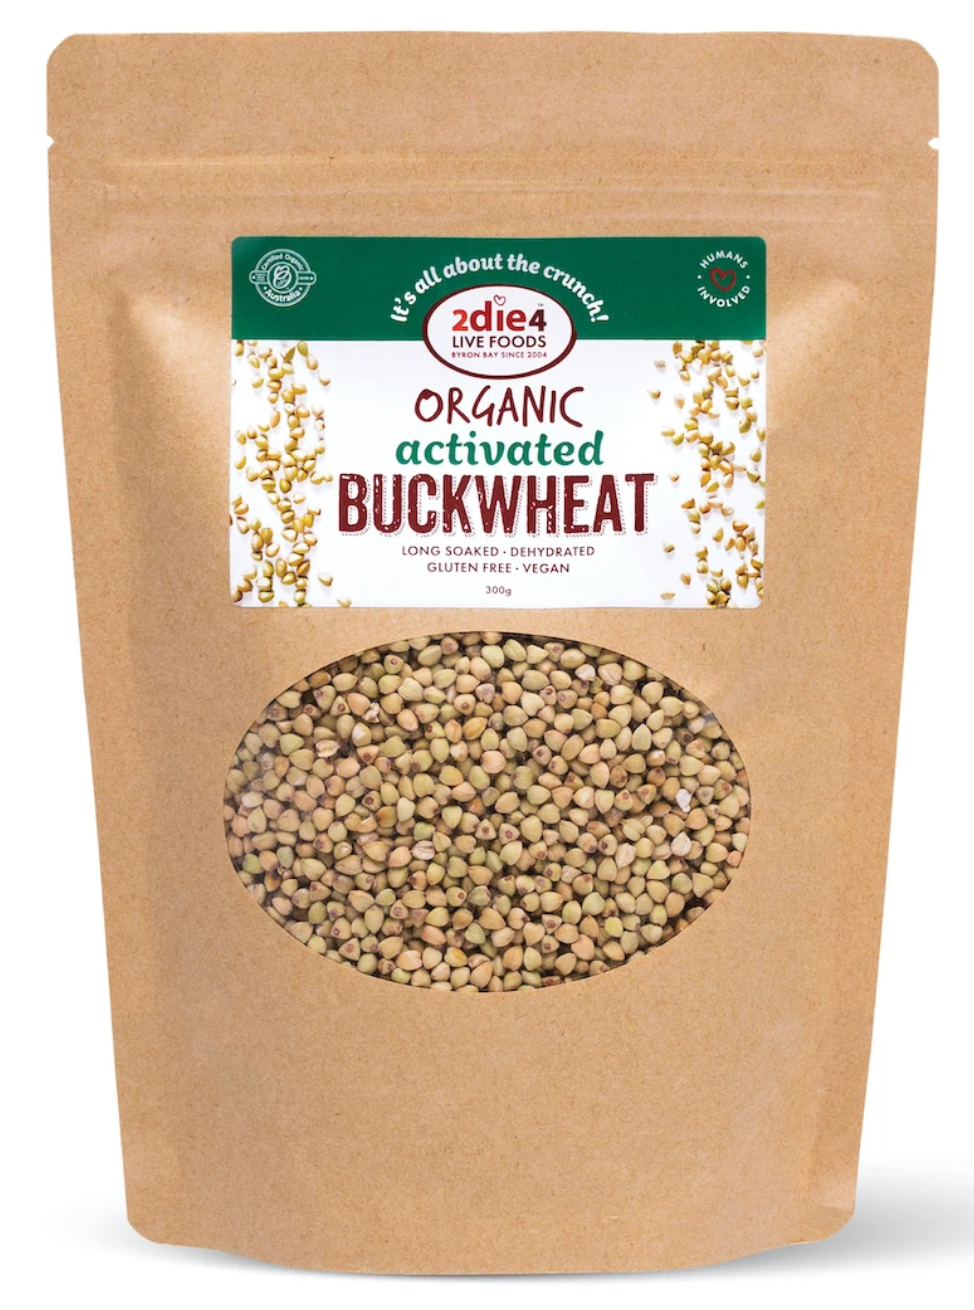 2die4 ACTIVATED ORGANIC BUCKWHEAT